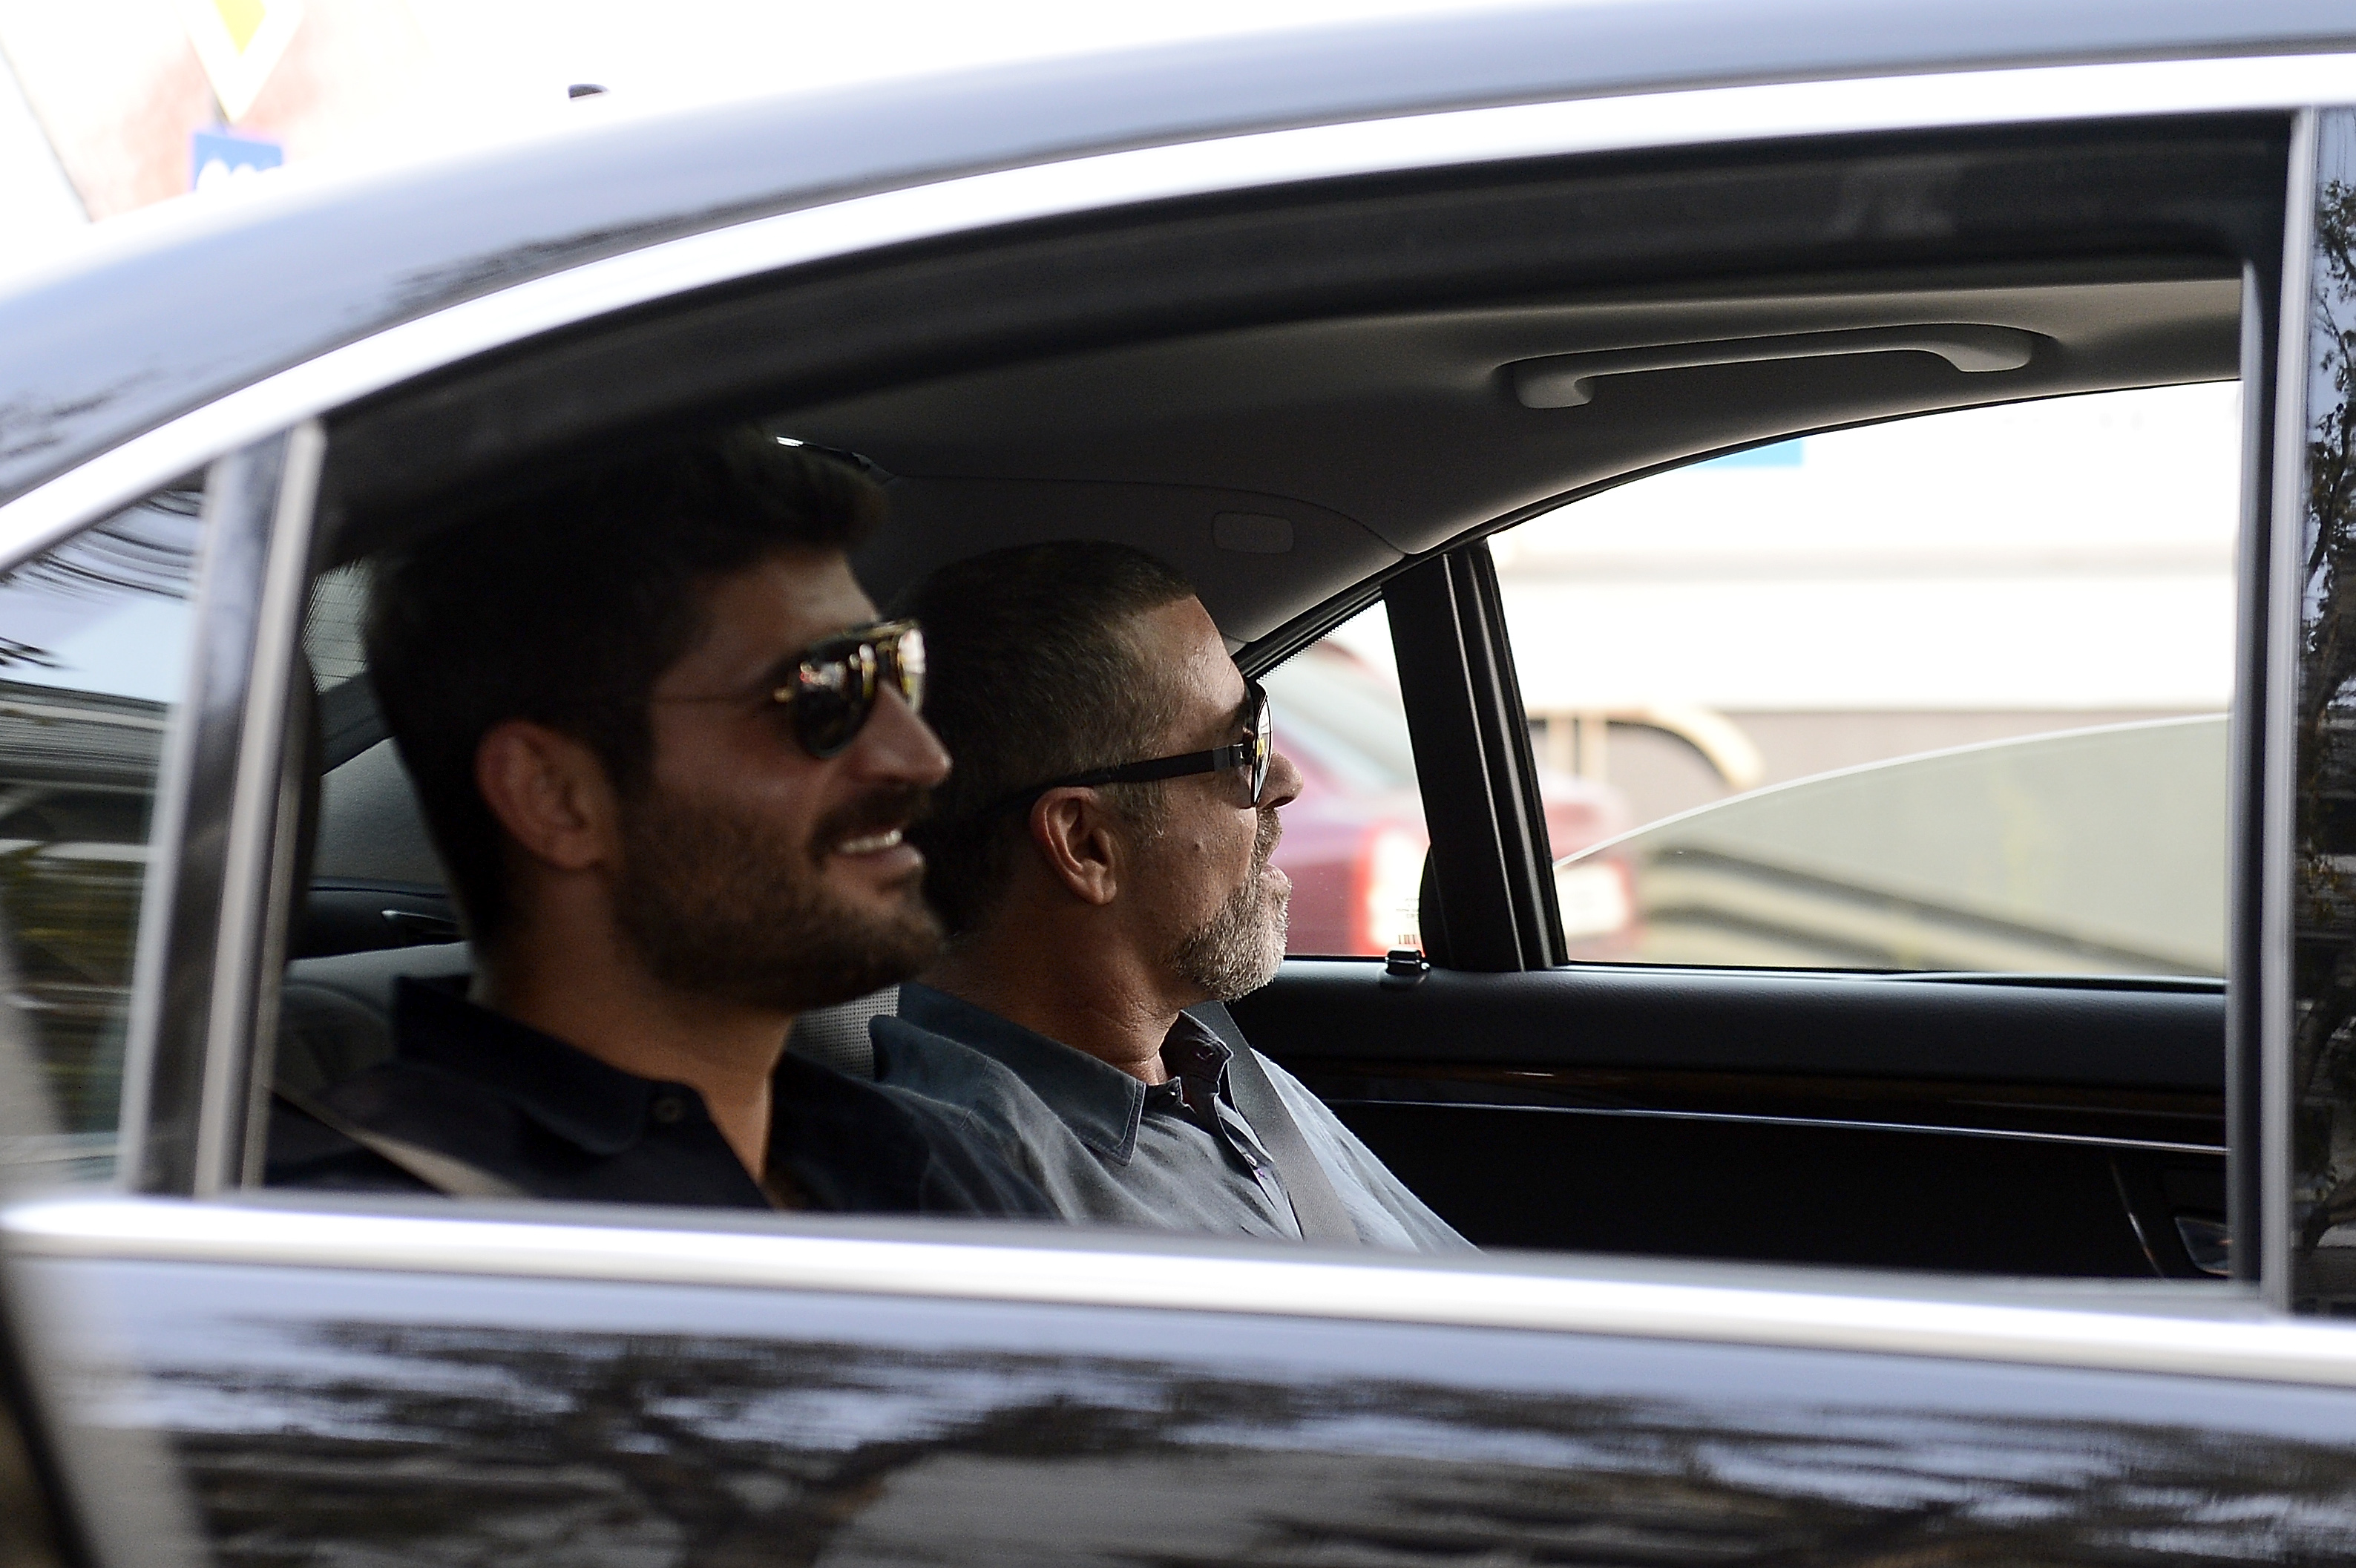 VIENNA, AUSTRIA - SEPTEMBER 04:  George Michael and  Fadi Fawaz arrive at Airport Vienna on September 4, 2012 in Vienna, Austria.  (Photo by Luca Teuchmann/Getty Images)